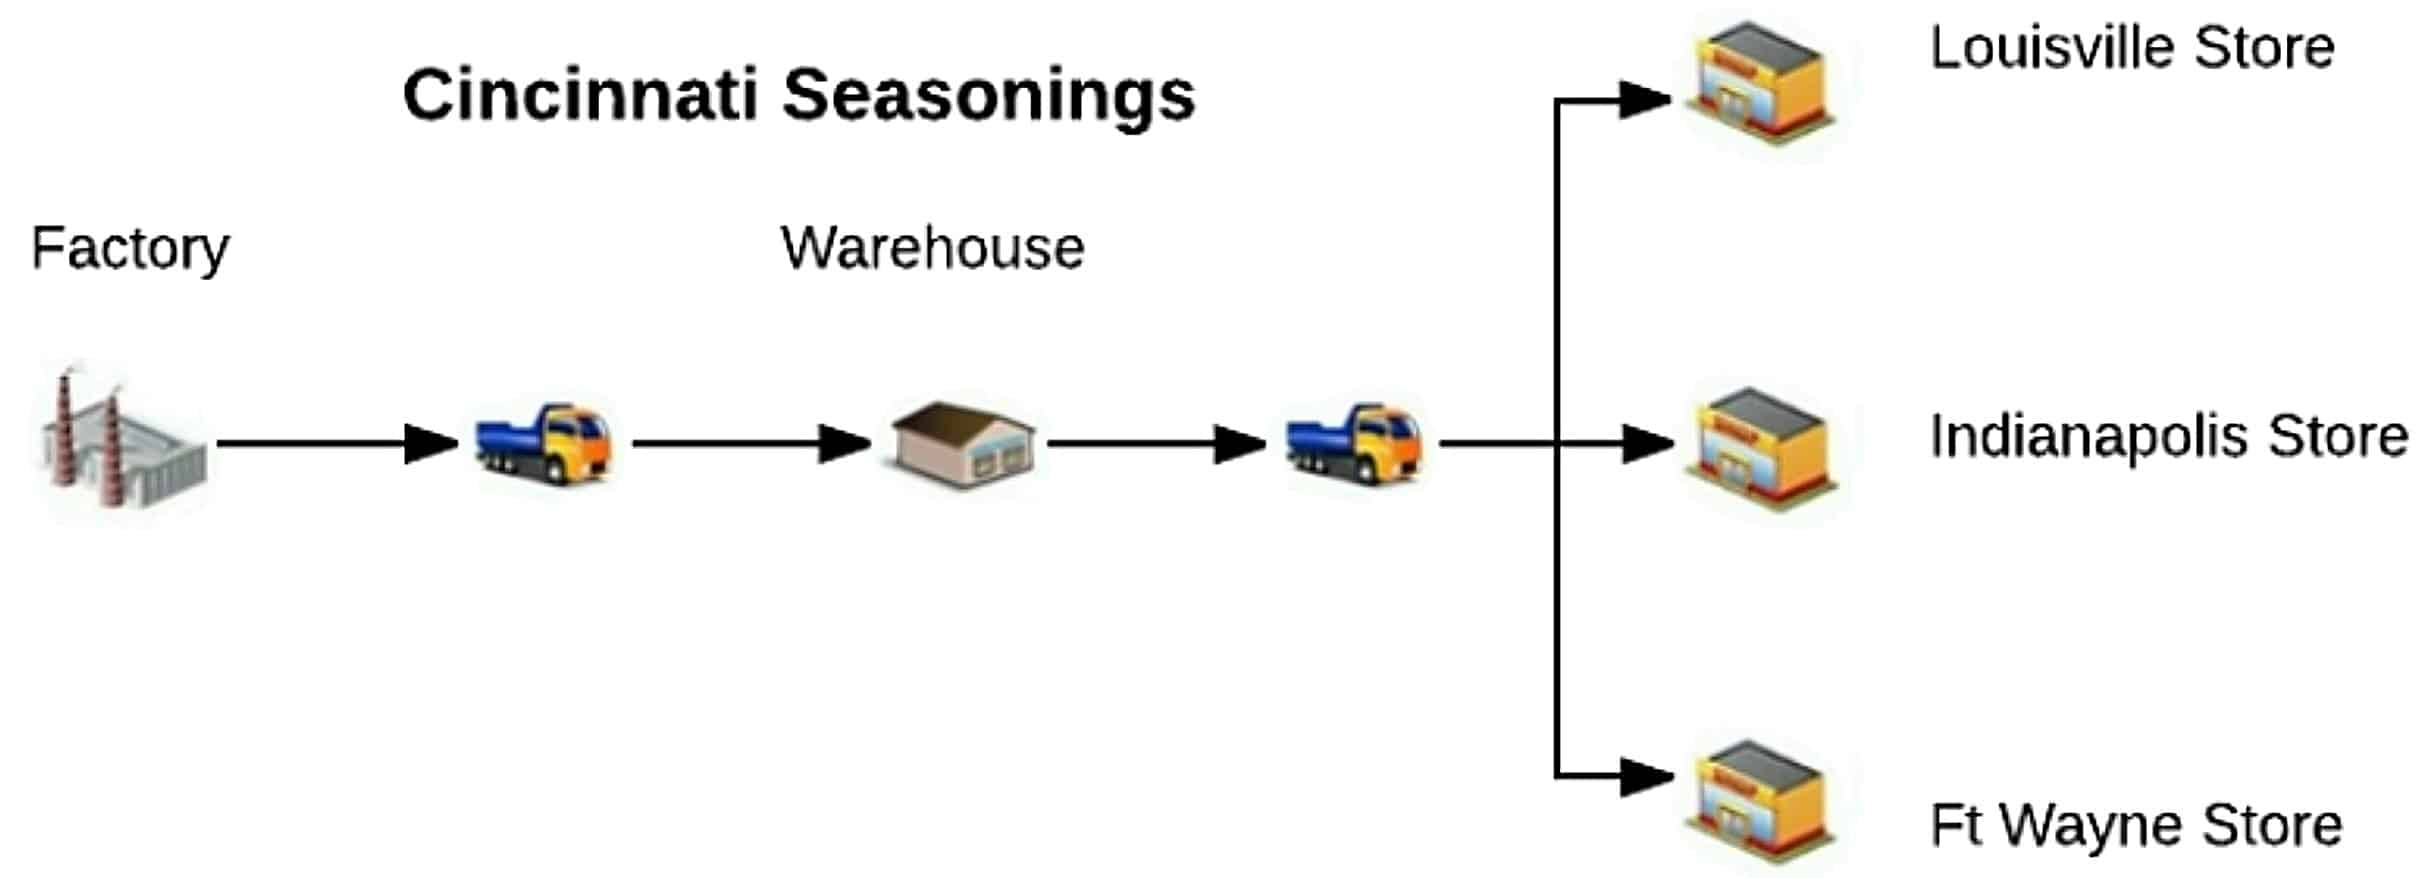 A chart showing the flow for the Cincinnati seasonings supply chain.